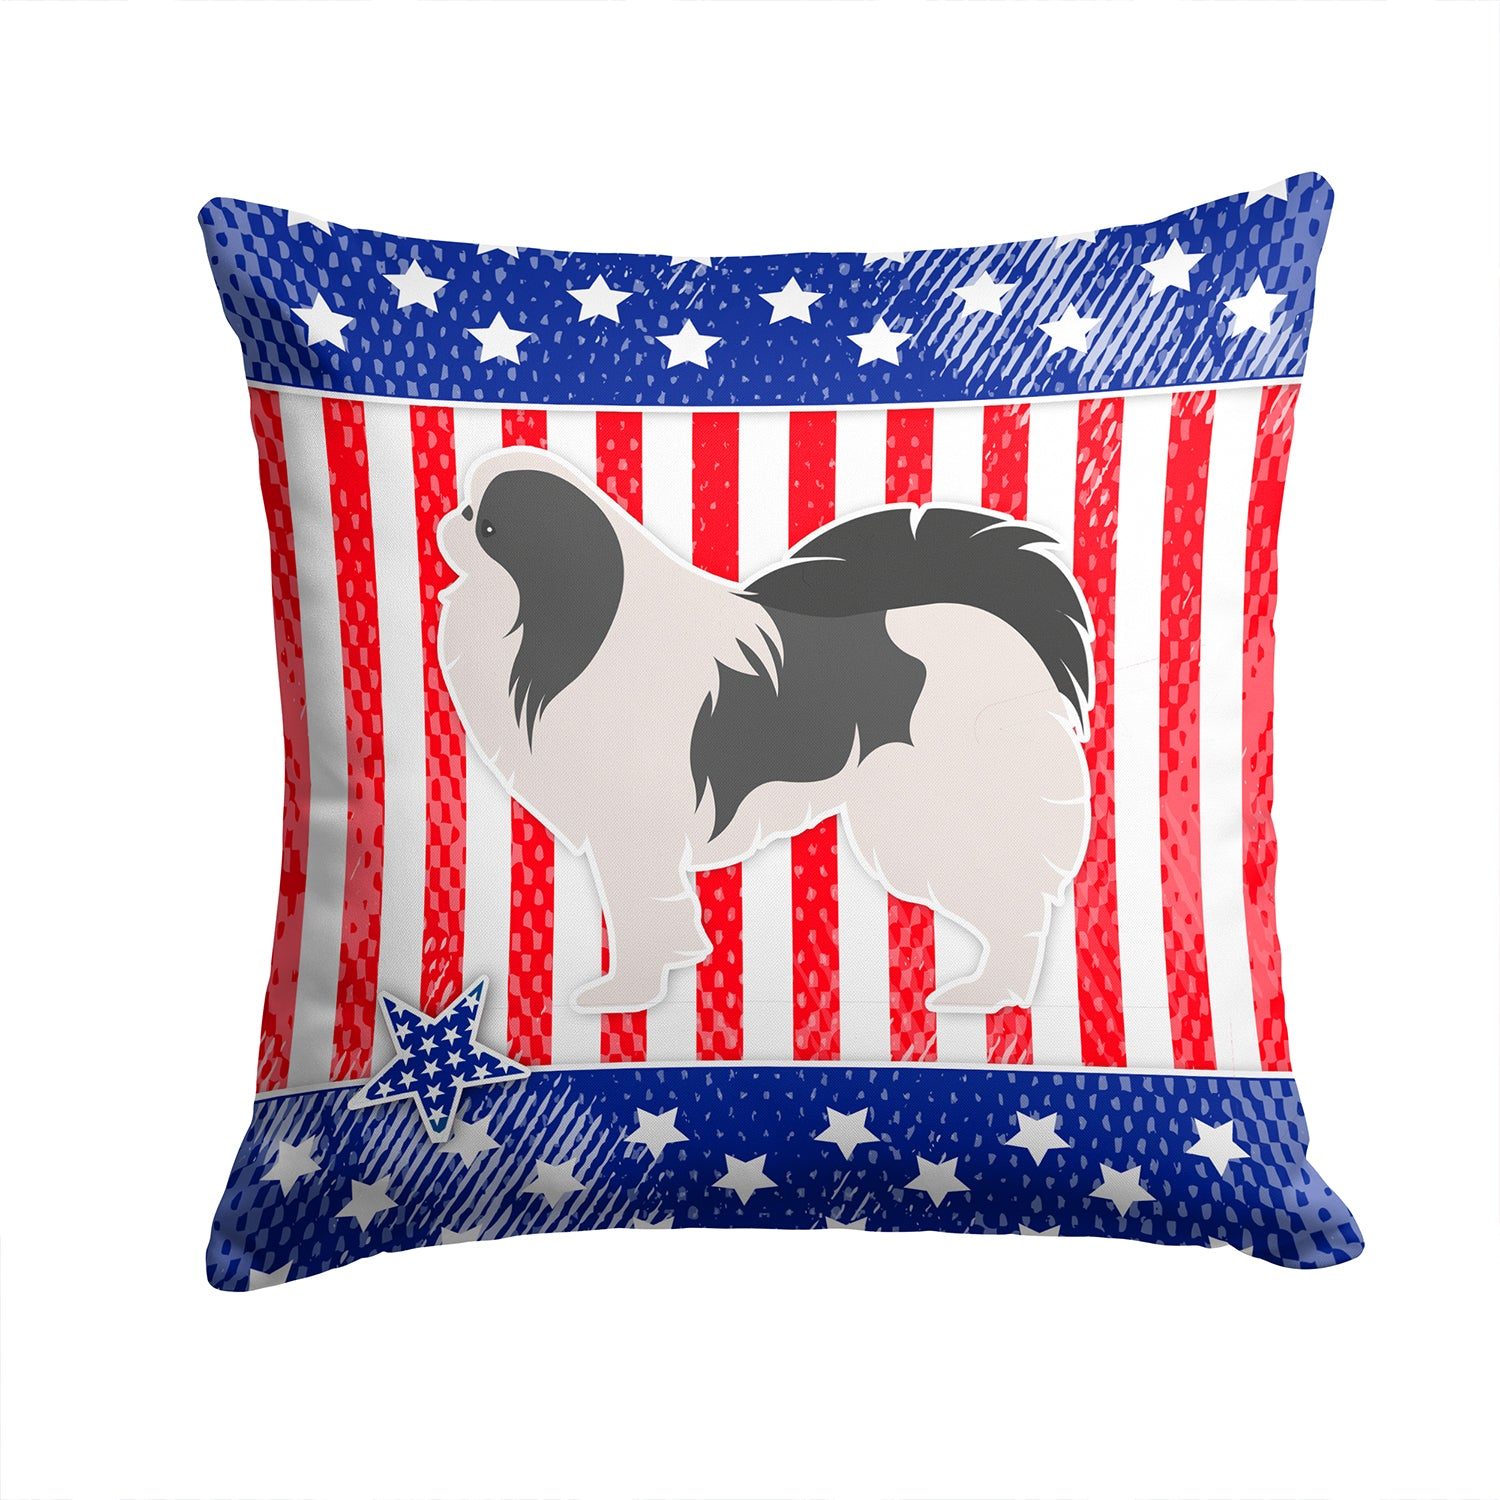 USA Patriotic Japanese Chin Fabric Decorative Pillow BB3337PW1414 by Caroline's Treasures